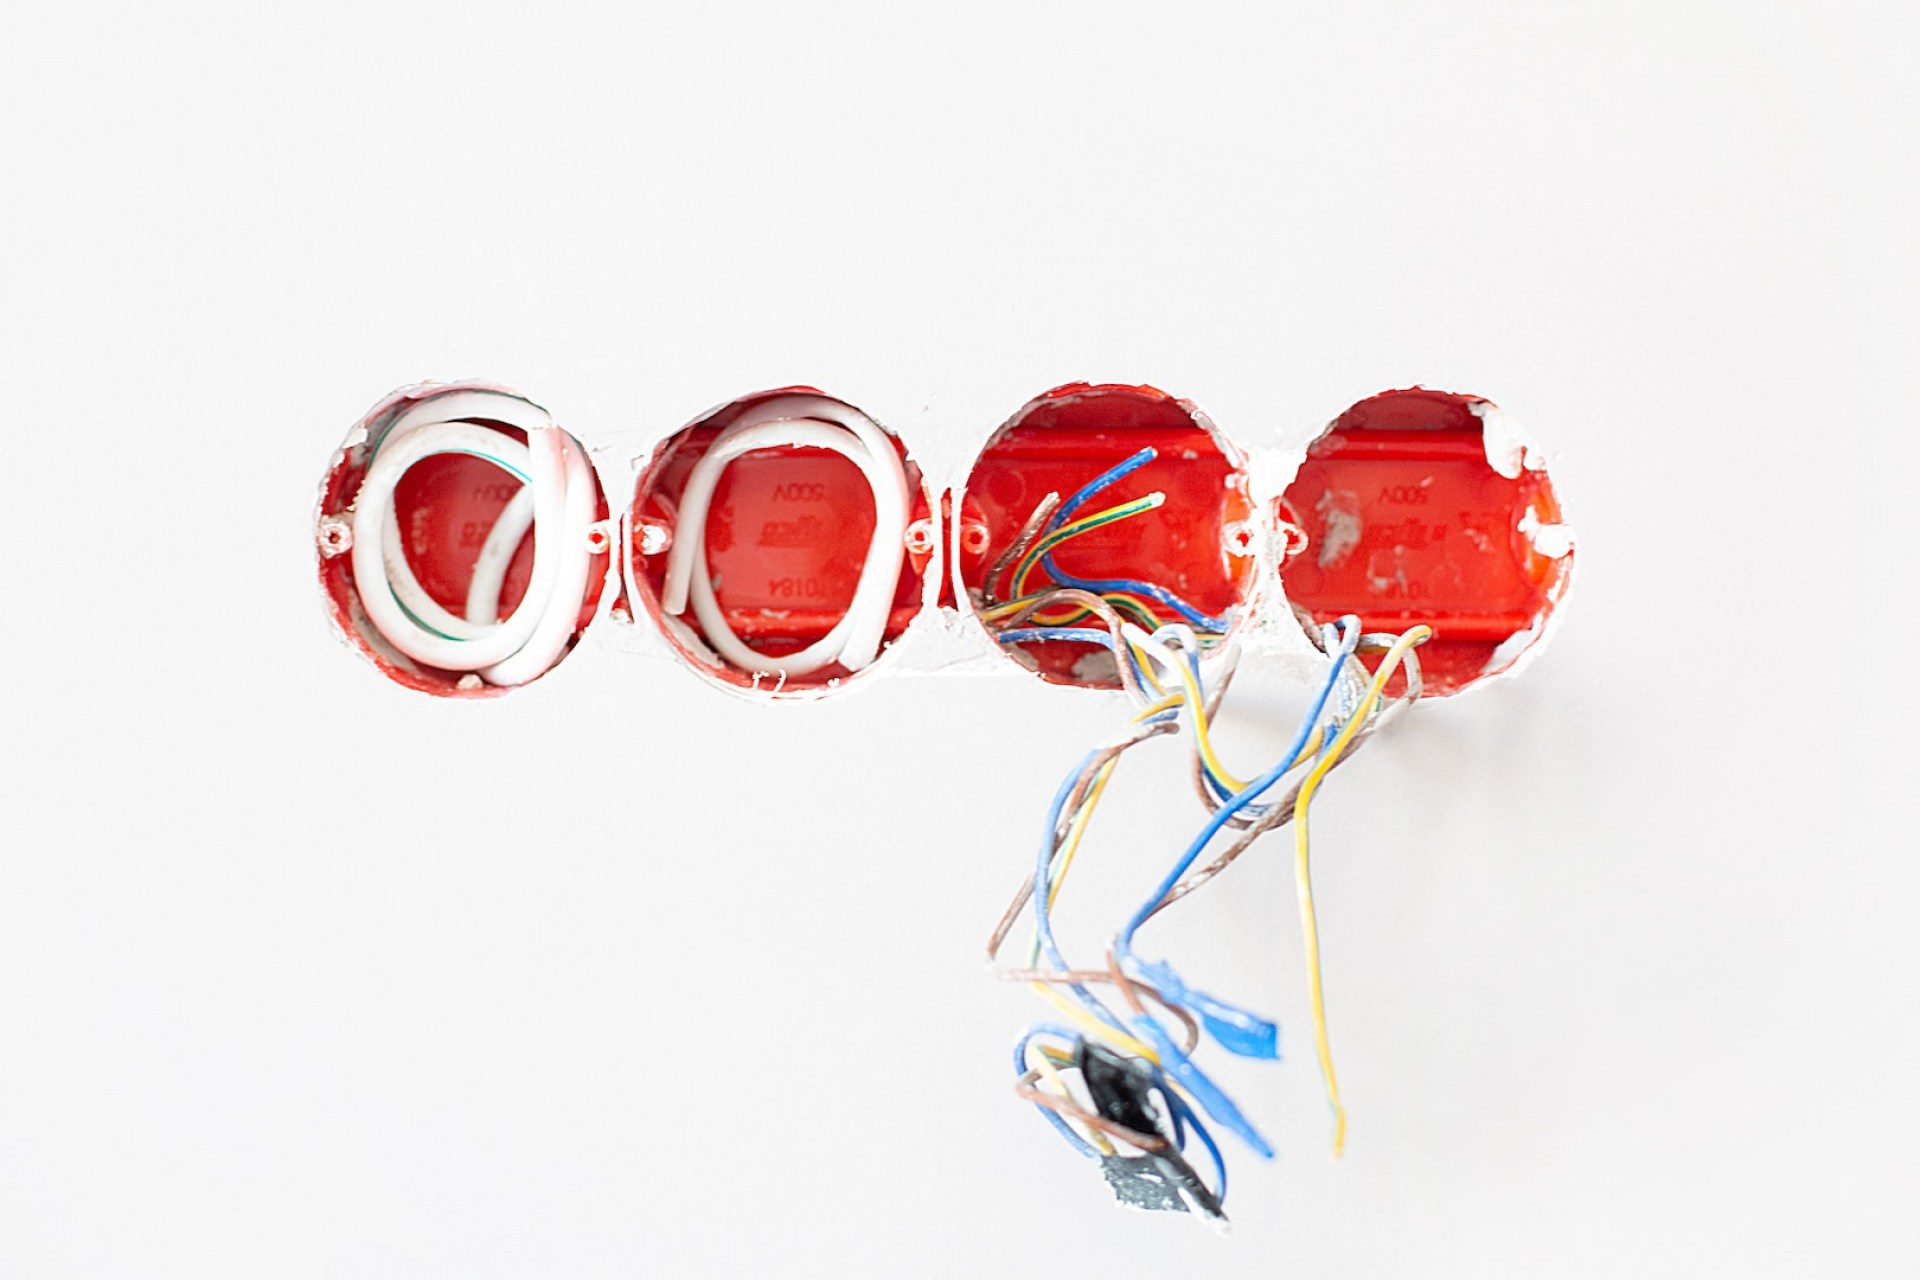 bright-cables-color-1583656-2-1920x1280.jpg